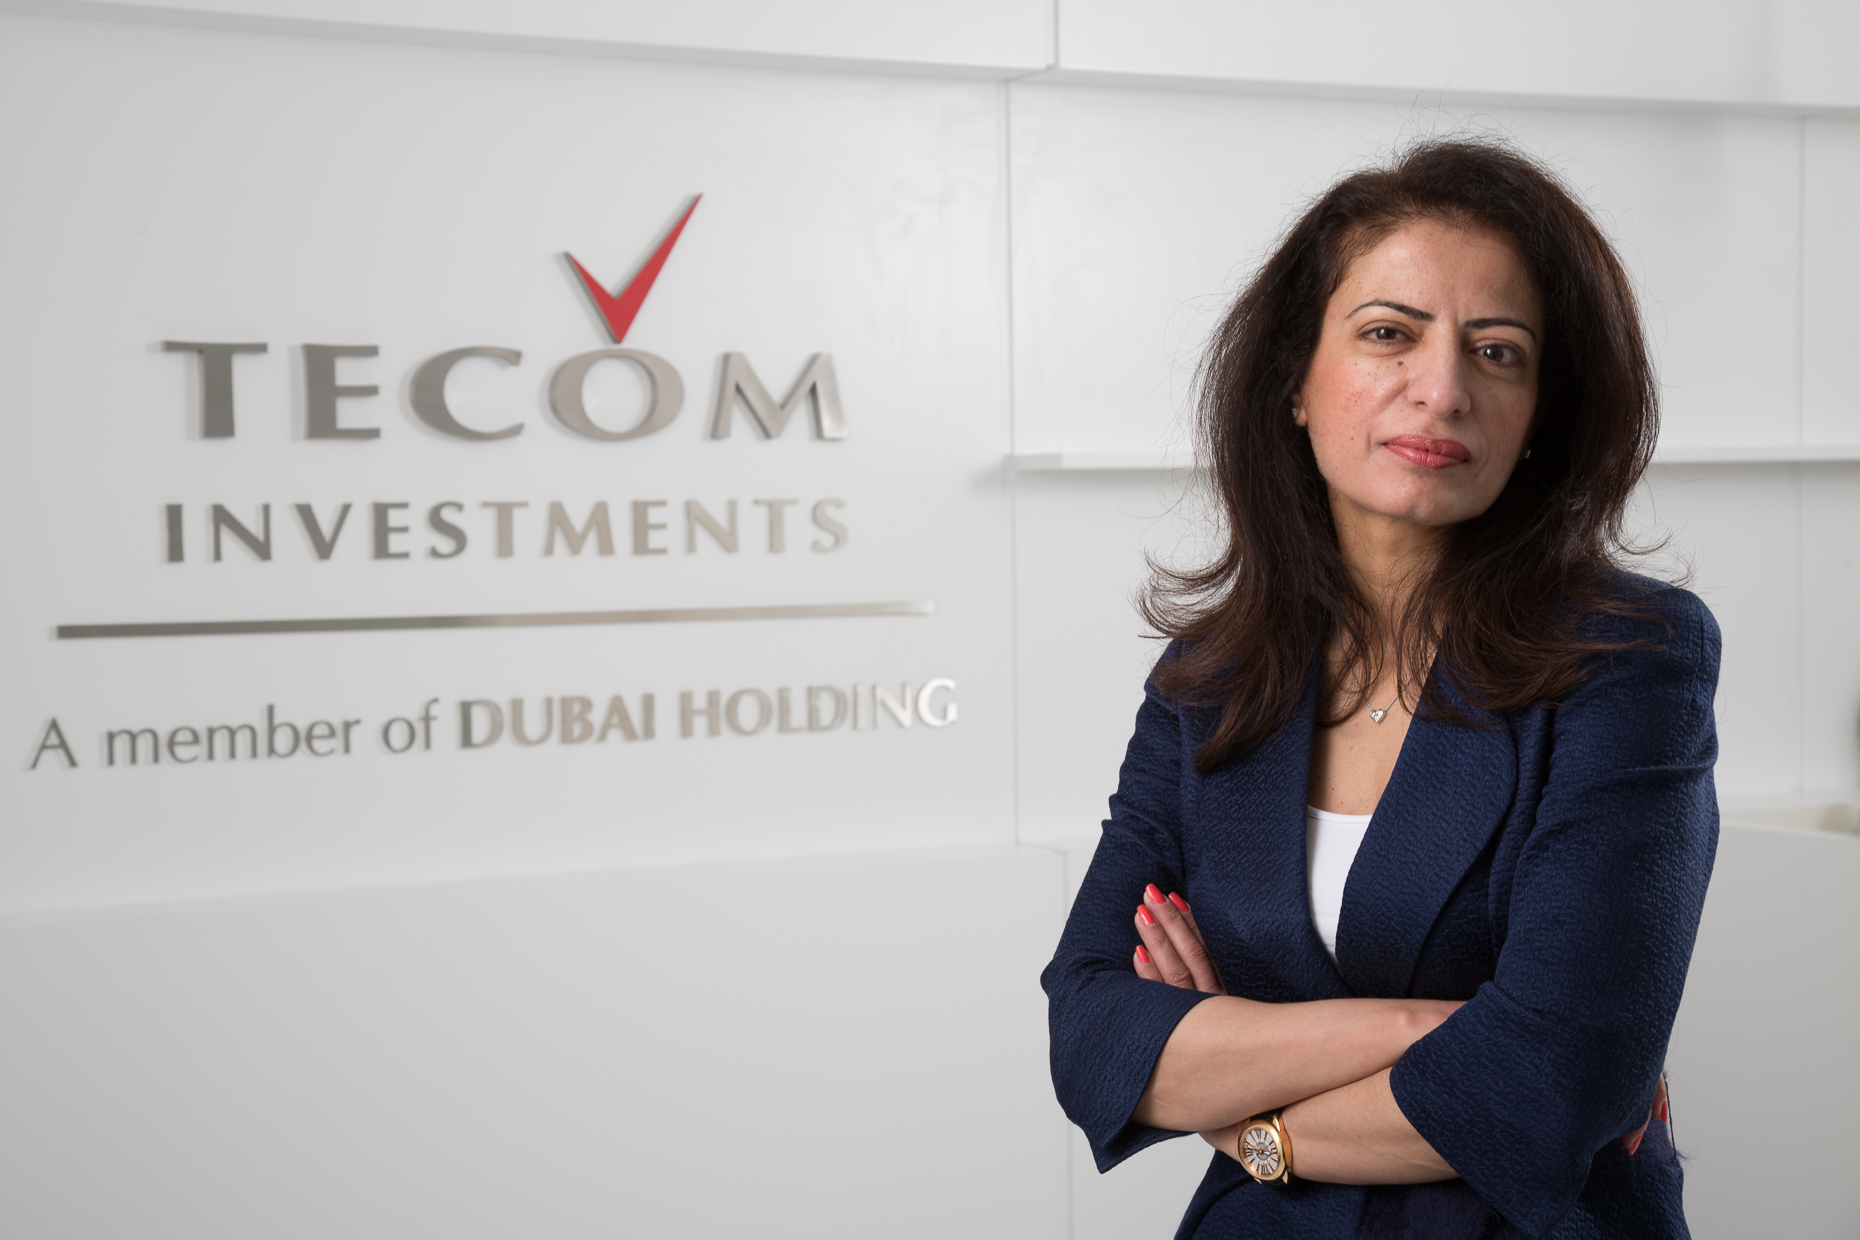 Tecom CEO Portrait | Oliver Jackson Photographer in Dubai